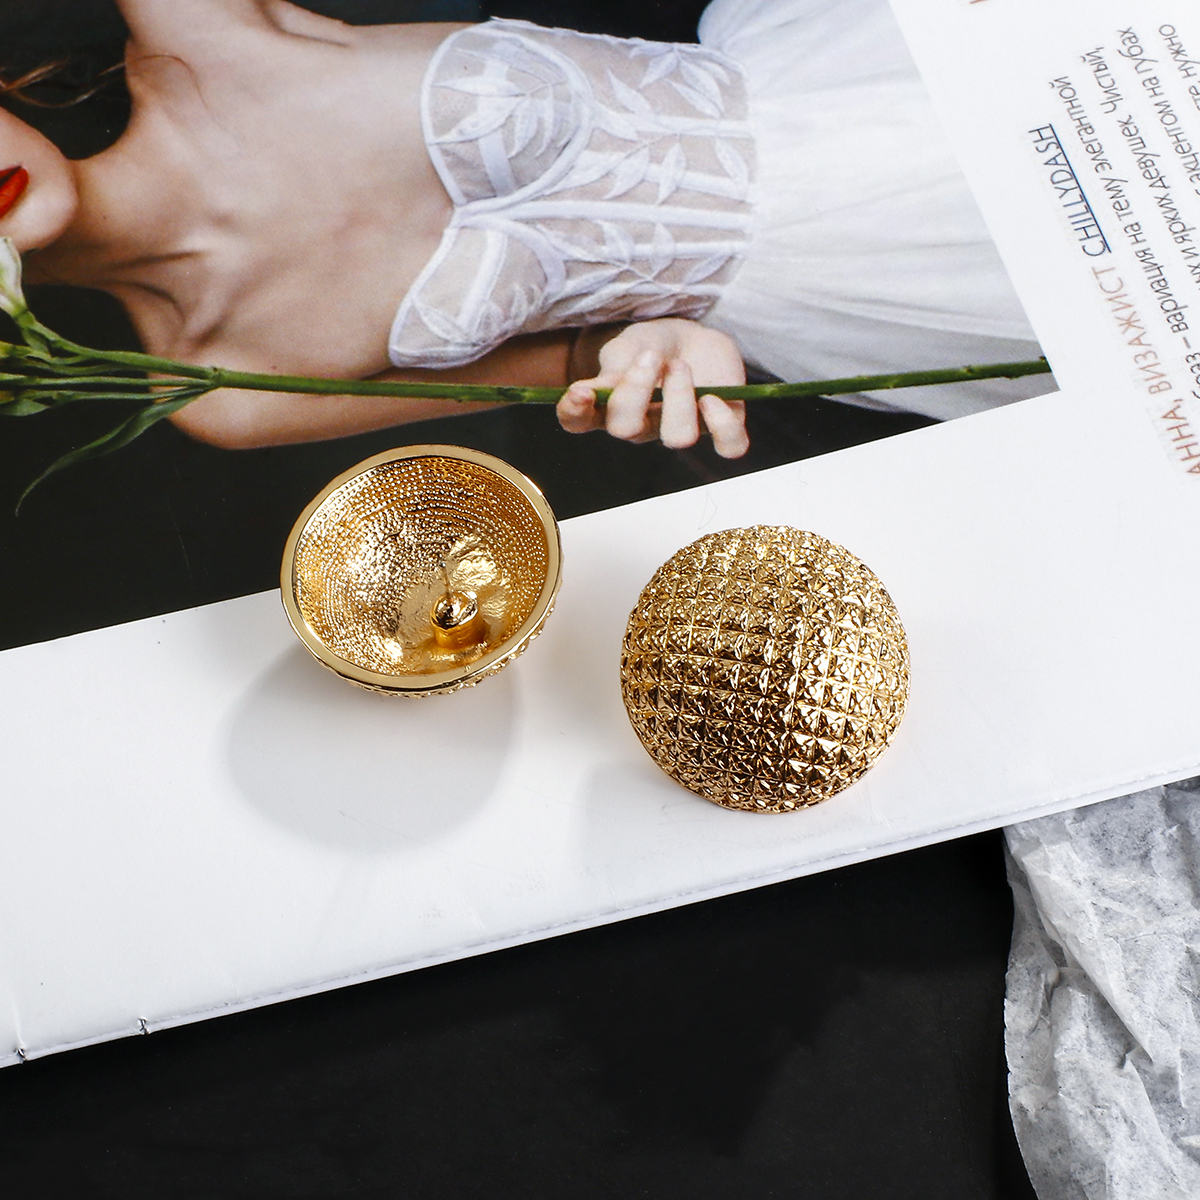 AENSOA Round Shaped Gold Color Earrings Simple Metal Vintage Stud Earrings For Women Fashion Jewelry brincos 2020 Pendientes